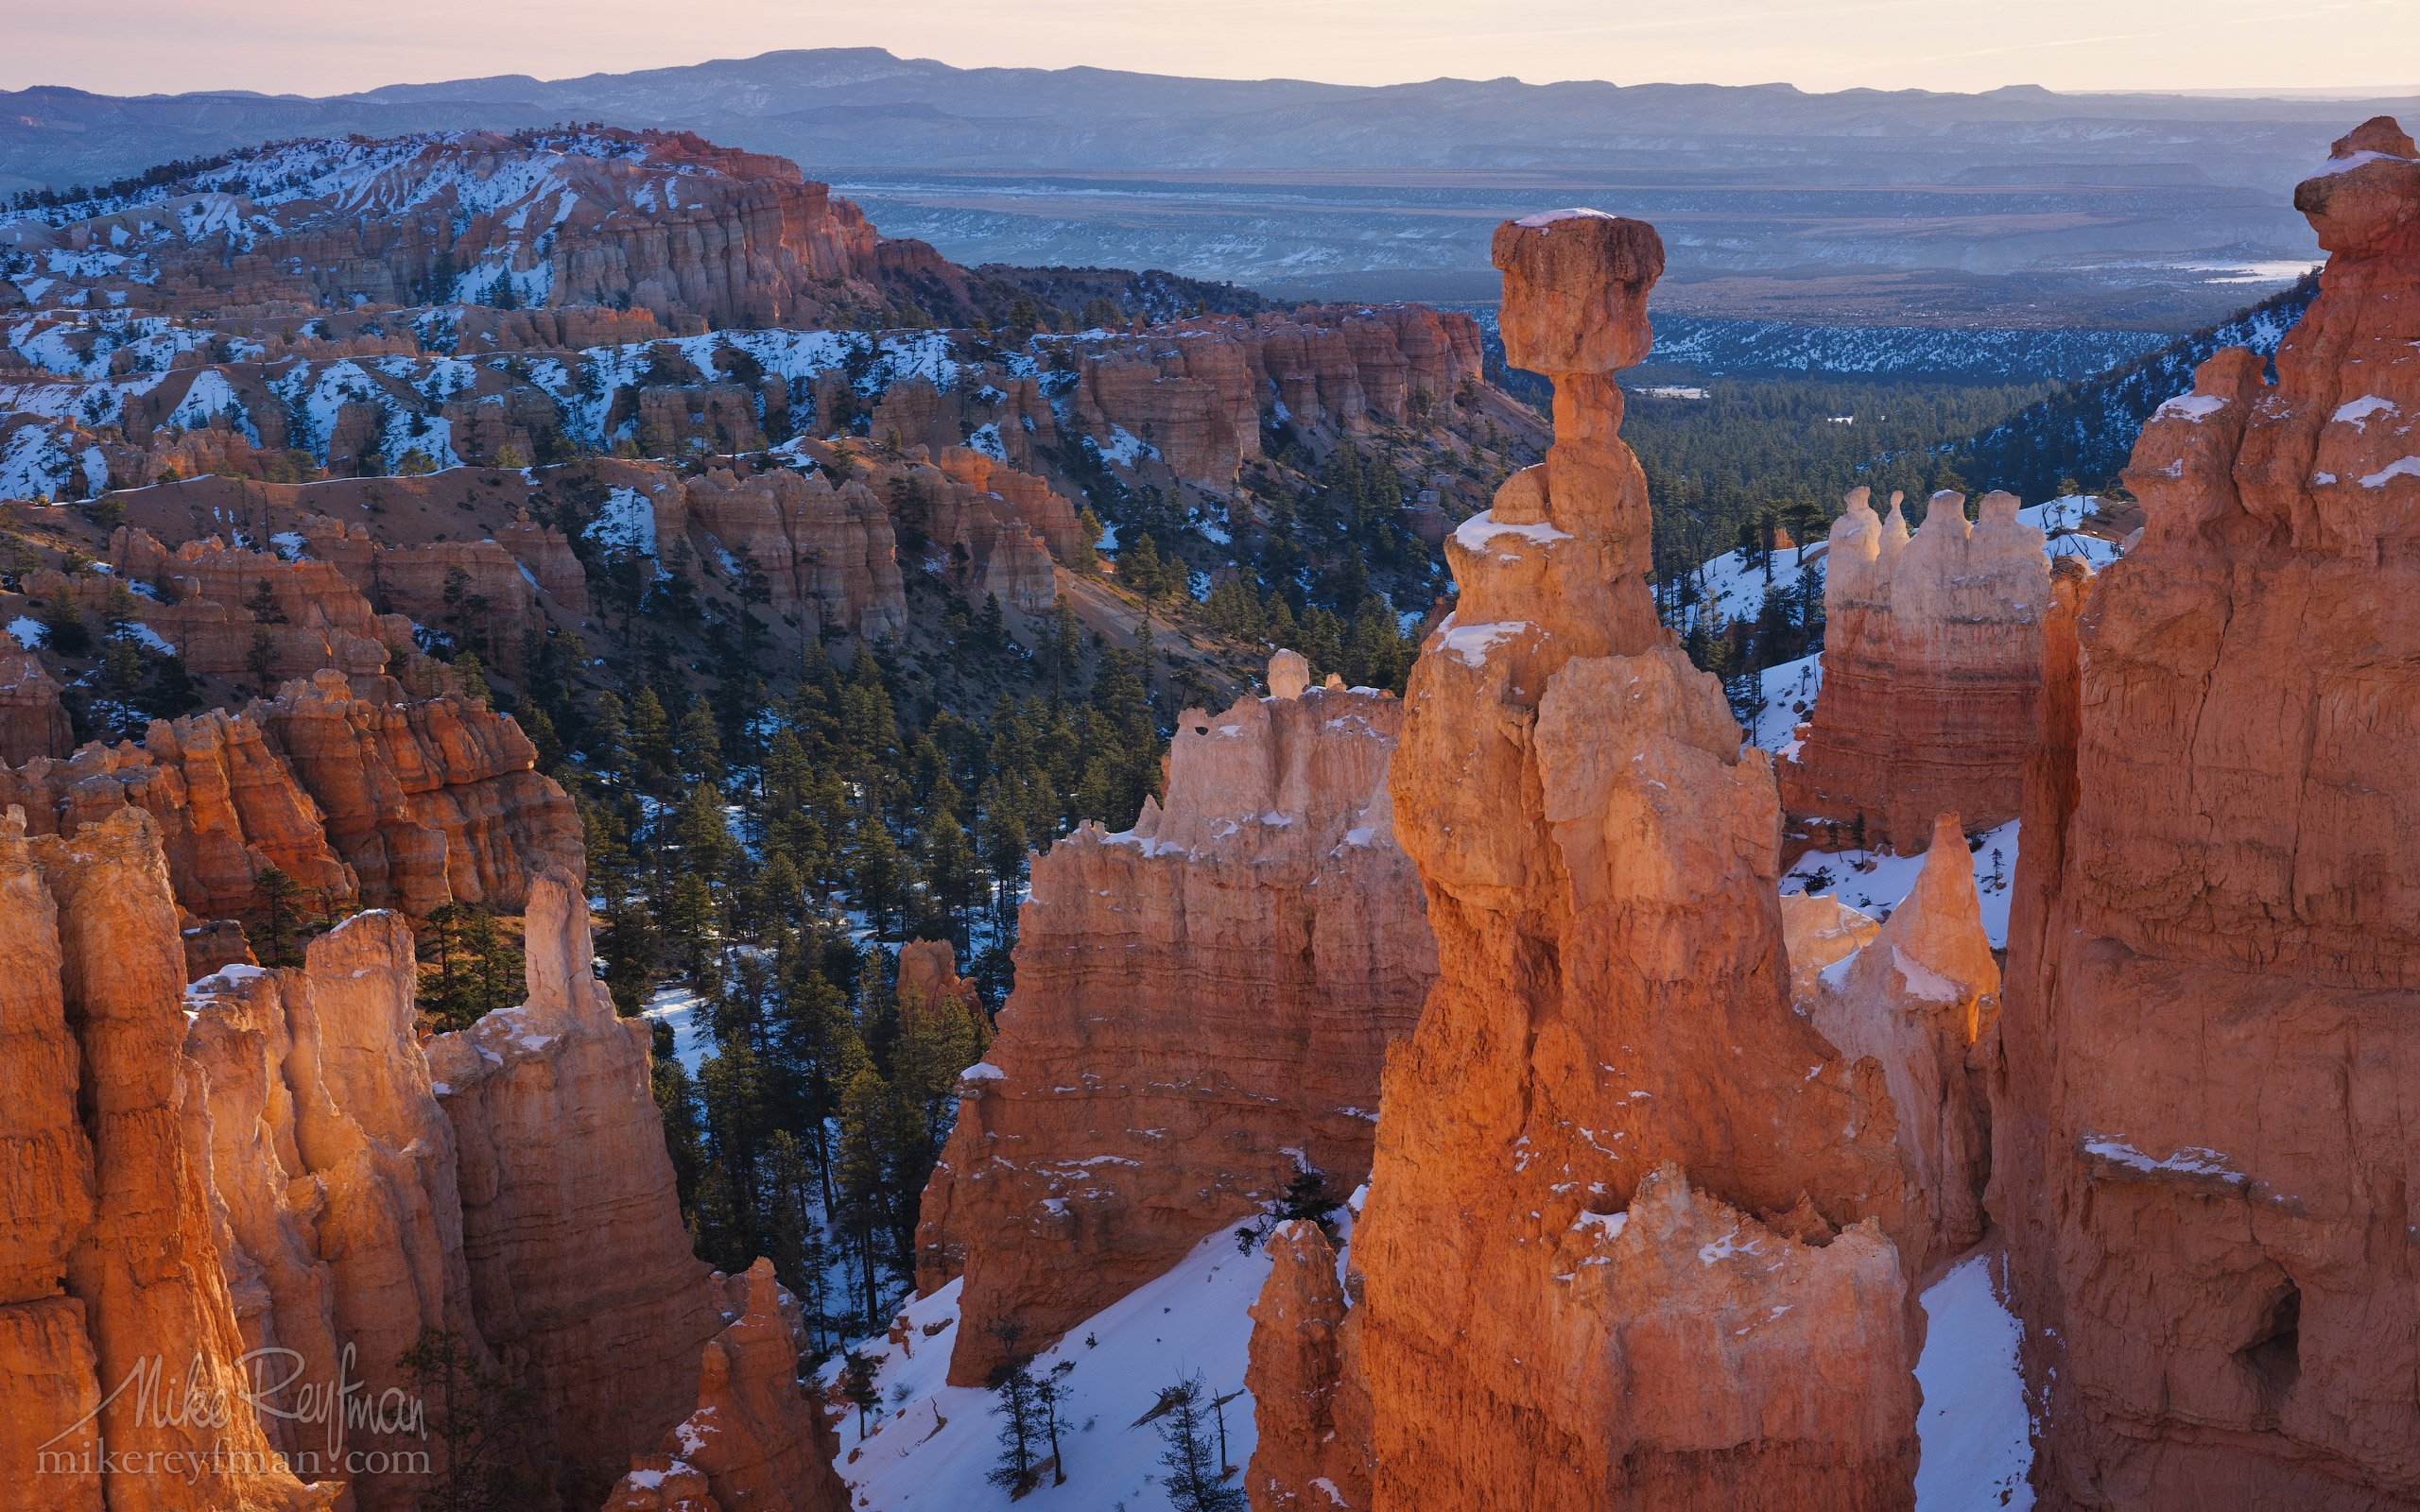 america, arid, natural beauty, bryce canyon, cold, colorful, dawn, erosion, formation, geologic, hoodoos, landscape, mountains, national, park, sandstone, snow, southwest spires, start, sunrise, usa, utah, Майк Рейфман